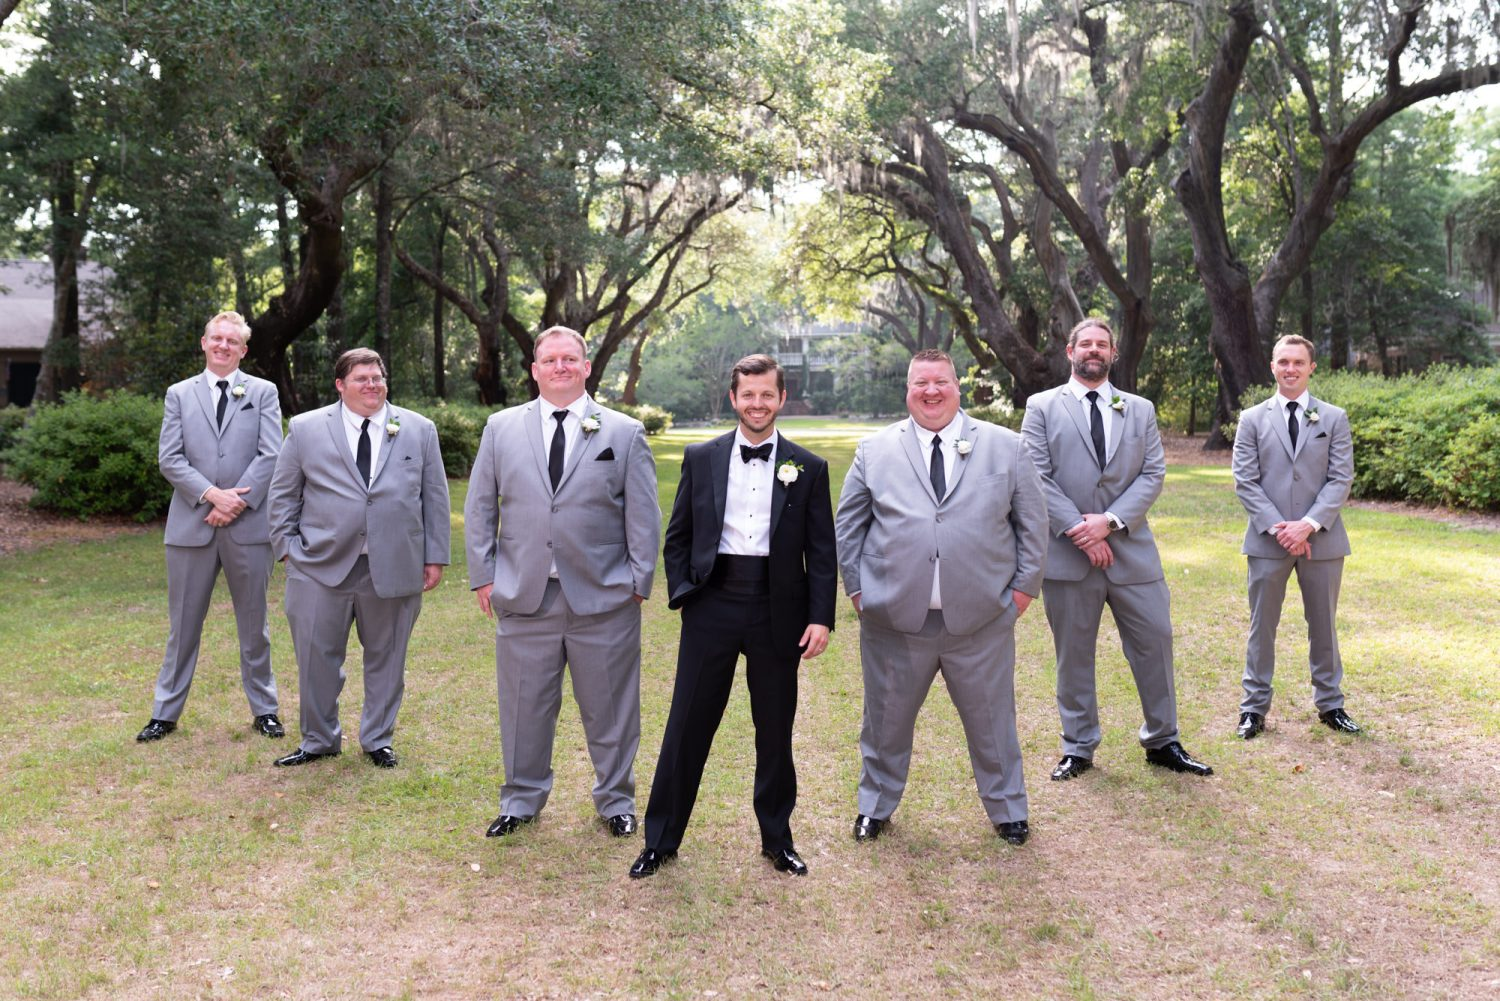 Flying V with groomsmen - Wachesaw Plantation